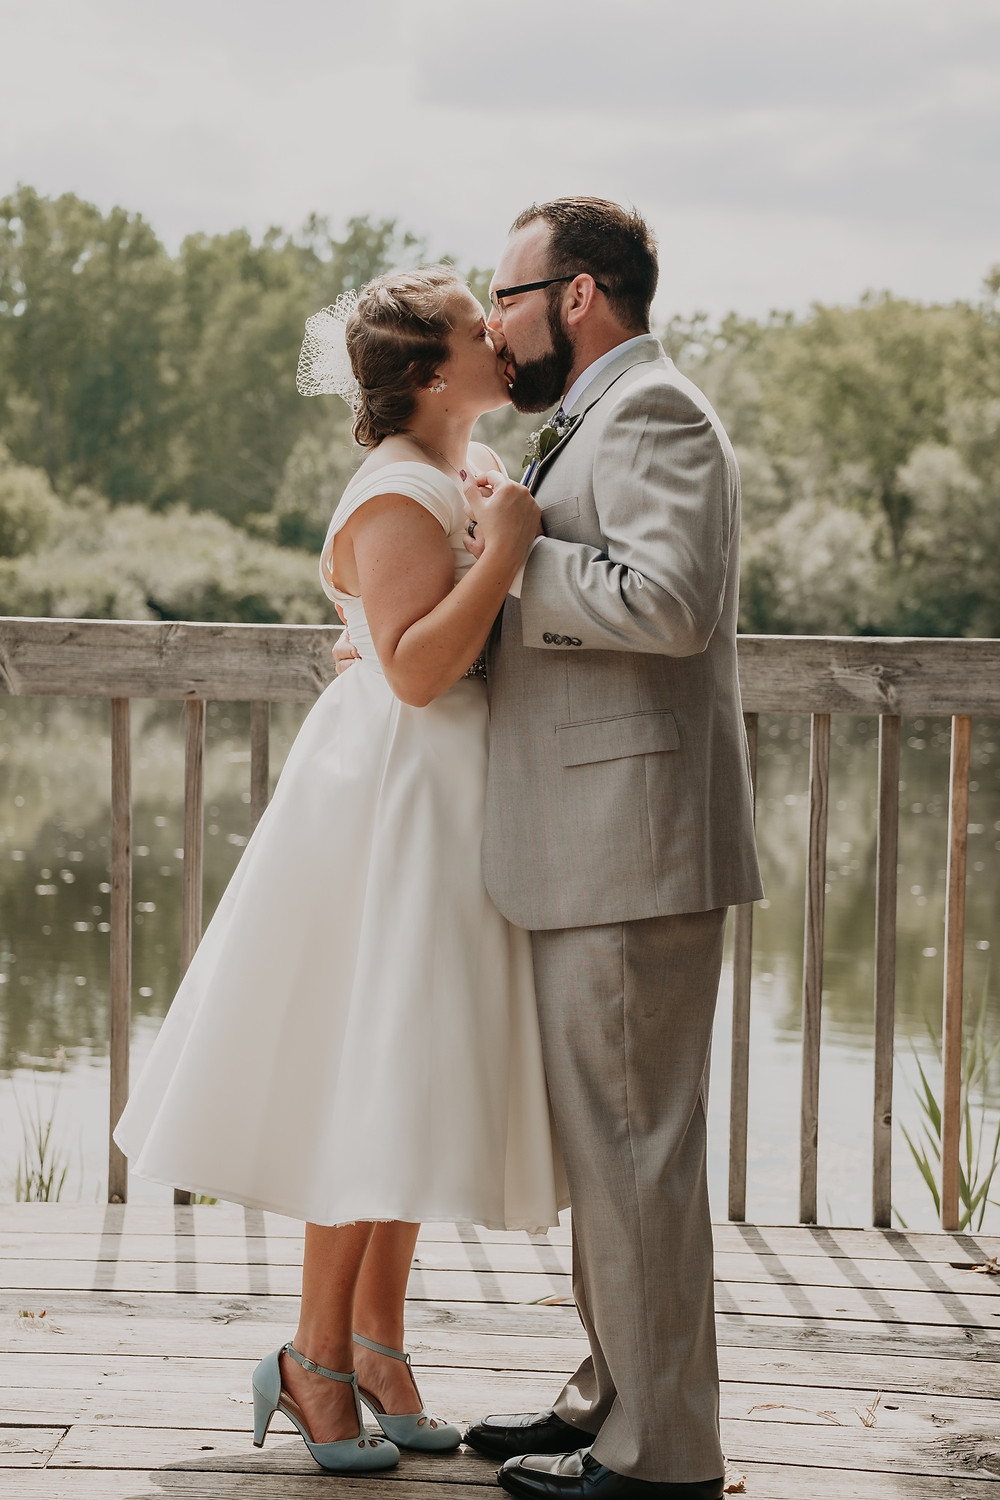 First kiss as husband and wife. Photographed by Nicole Leanne Photography.